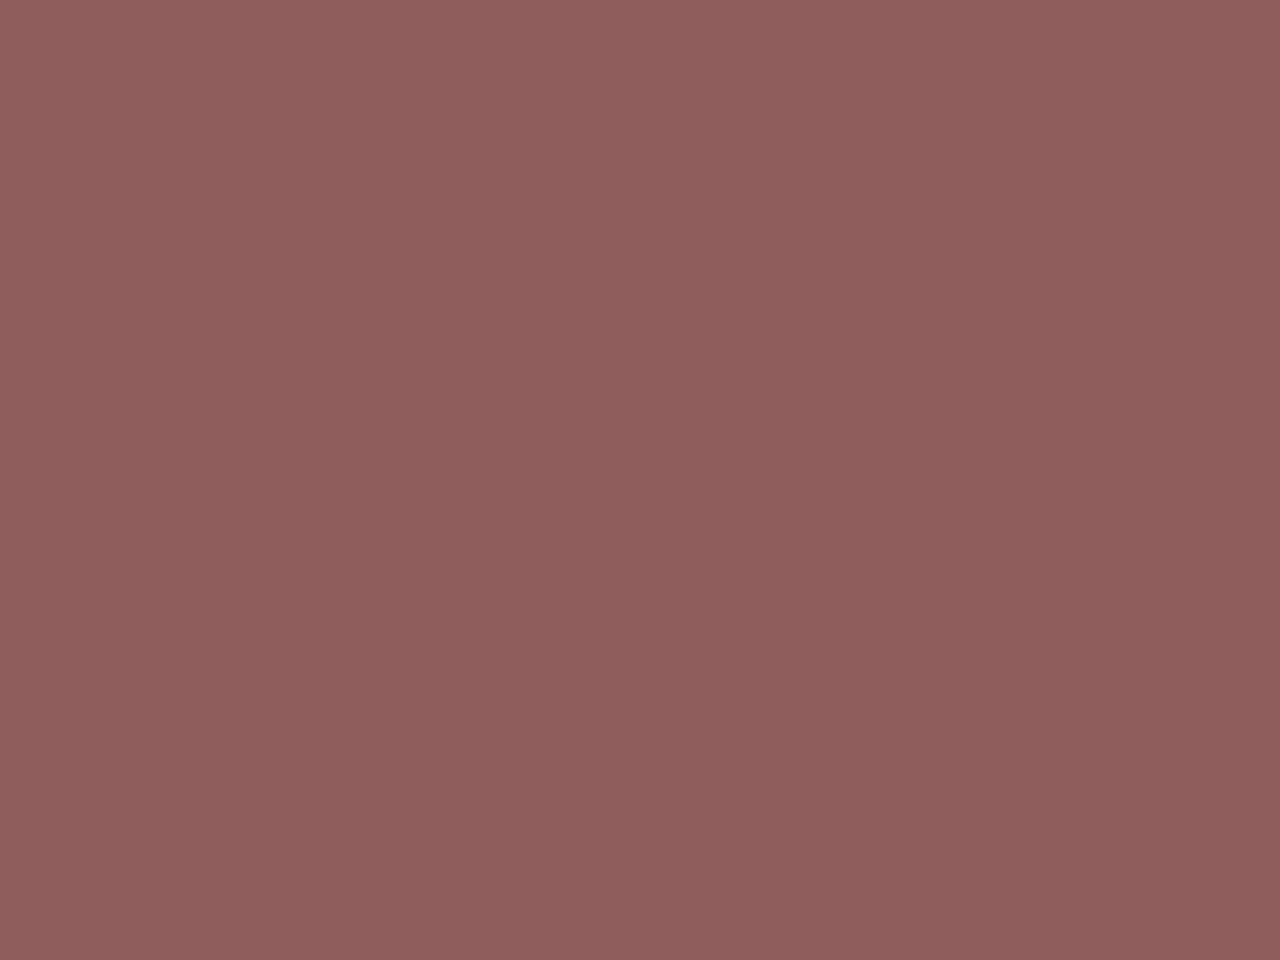 1280x960 Rose Taupe Solid Color Background